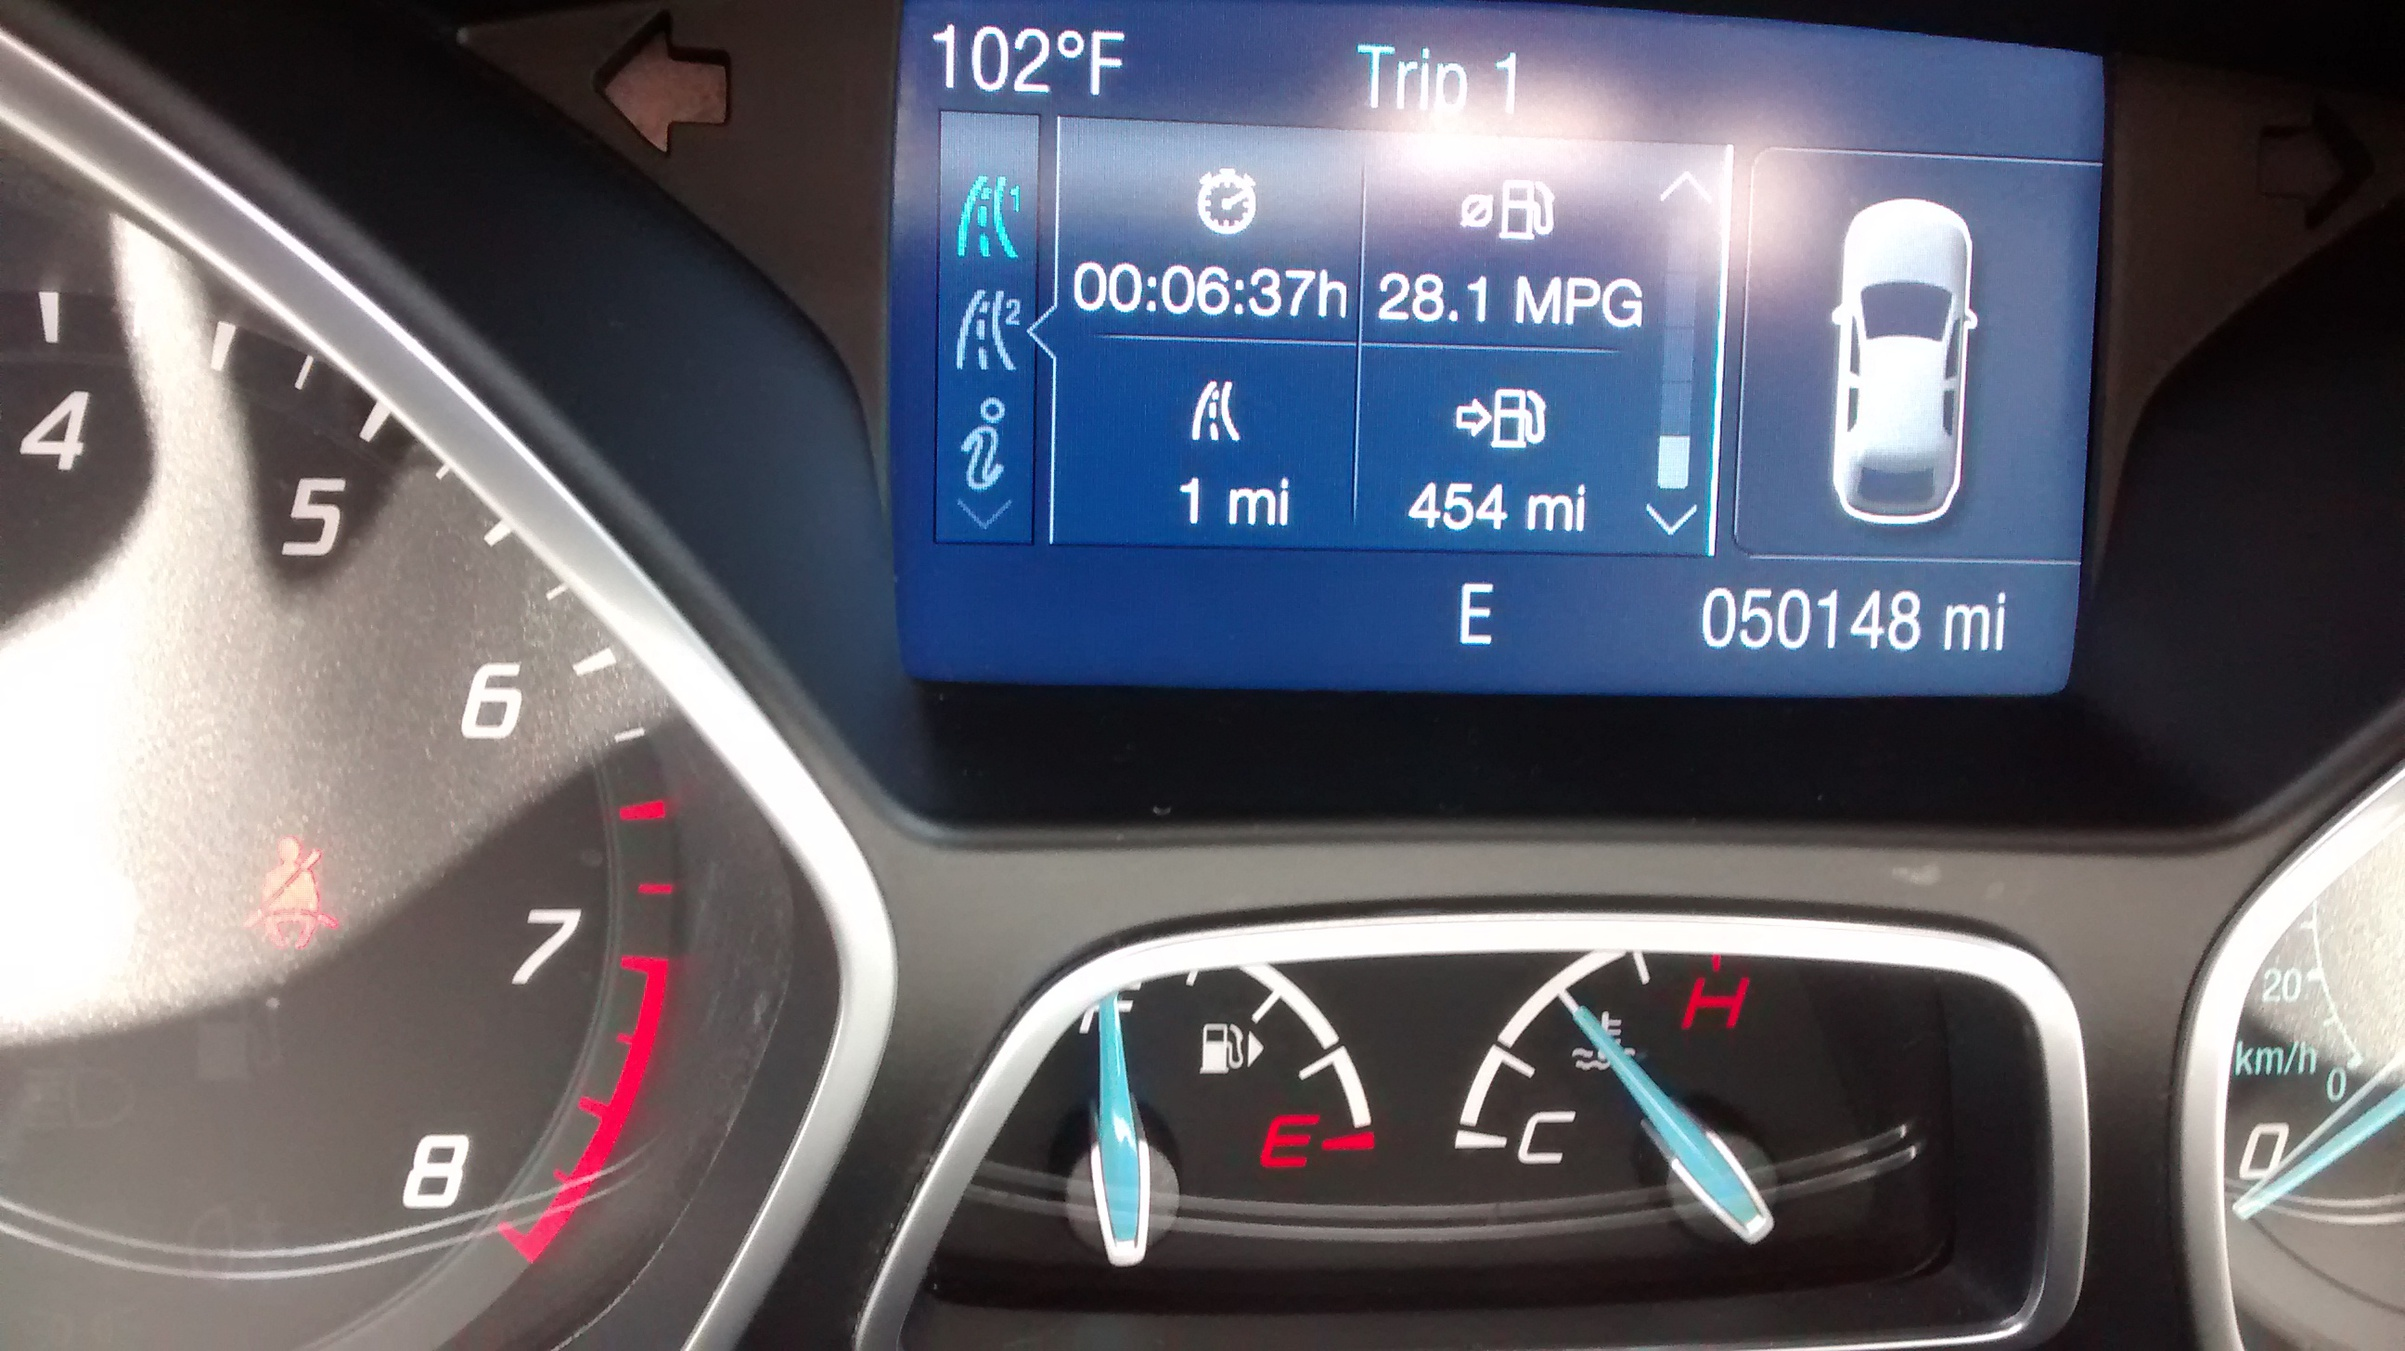 An Issue Ford can't figure out on my Focus-img_20150712_144908657%5B1%5D.jpg